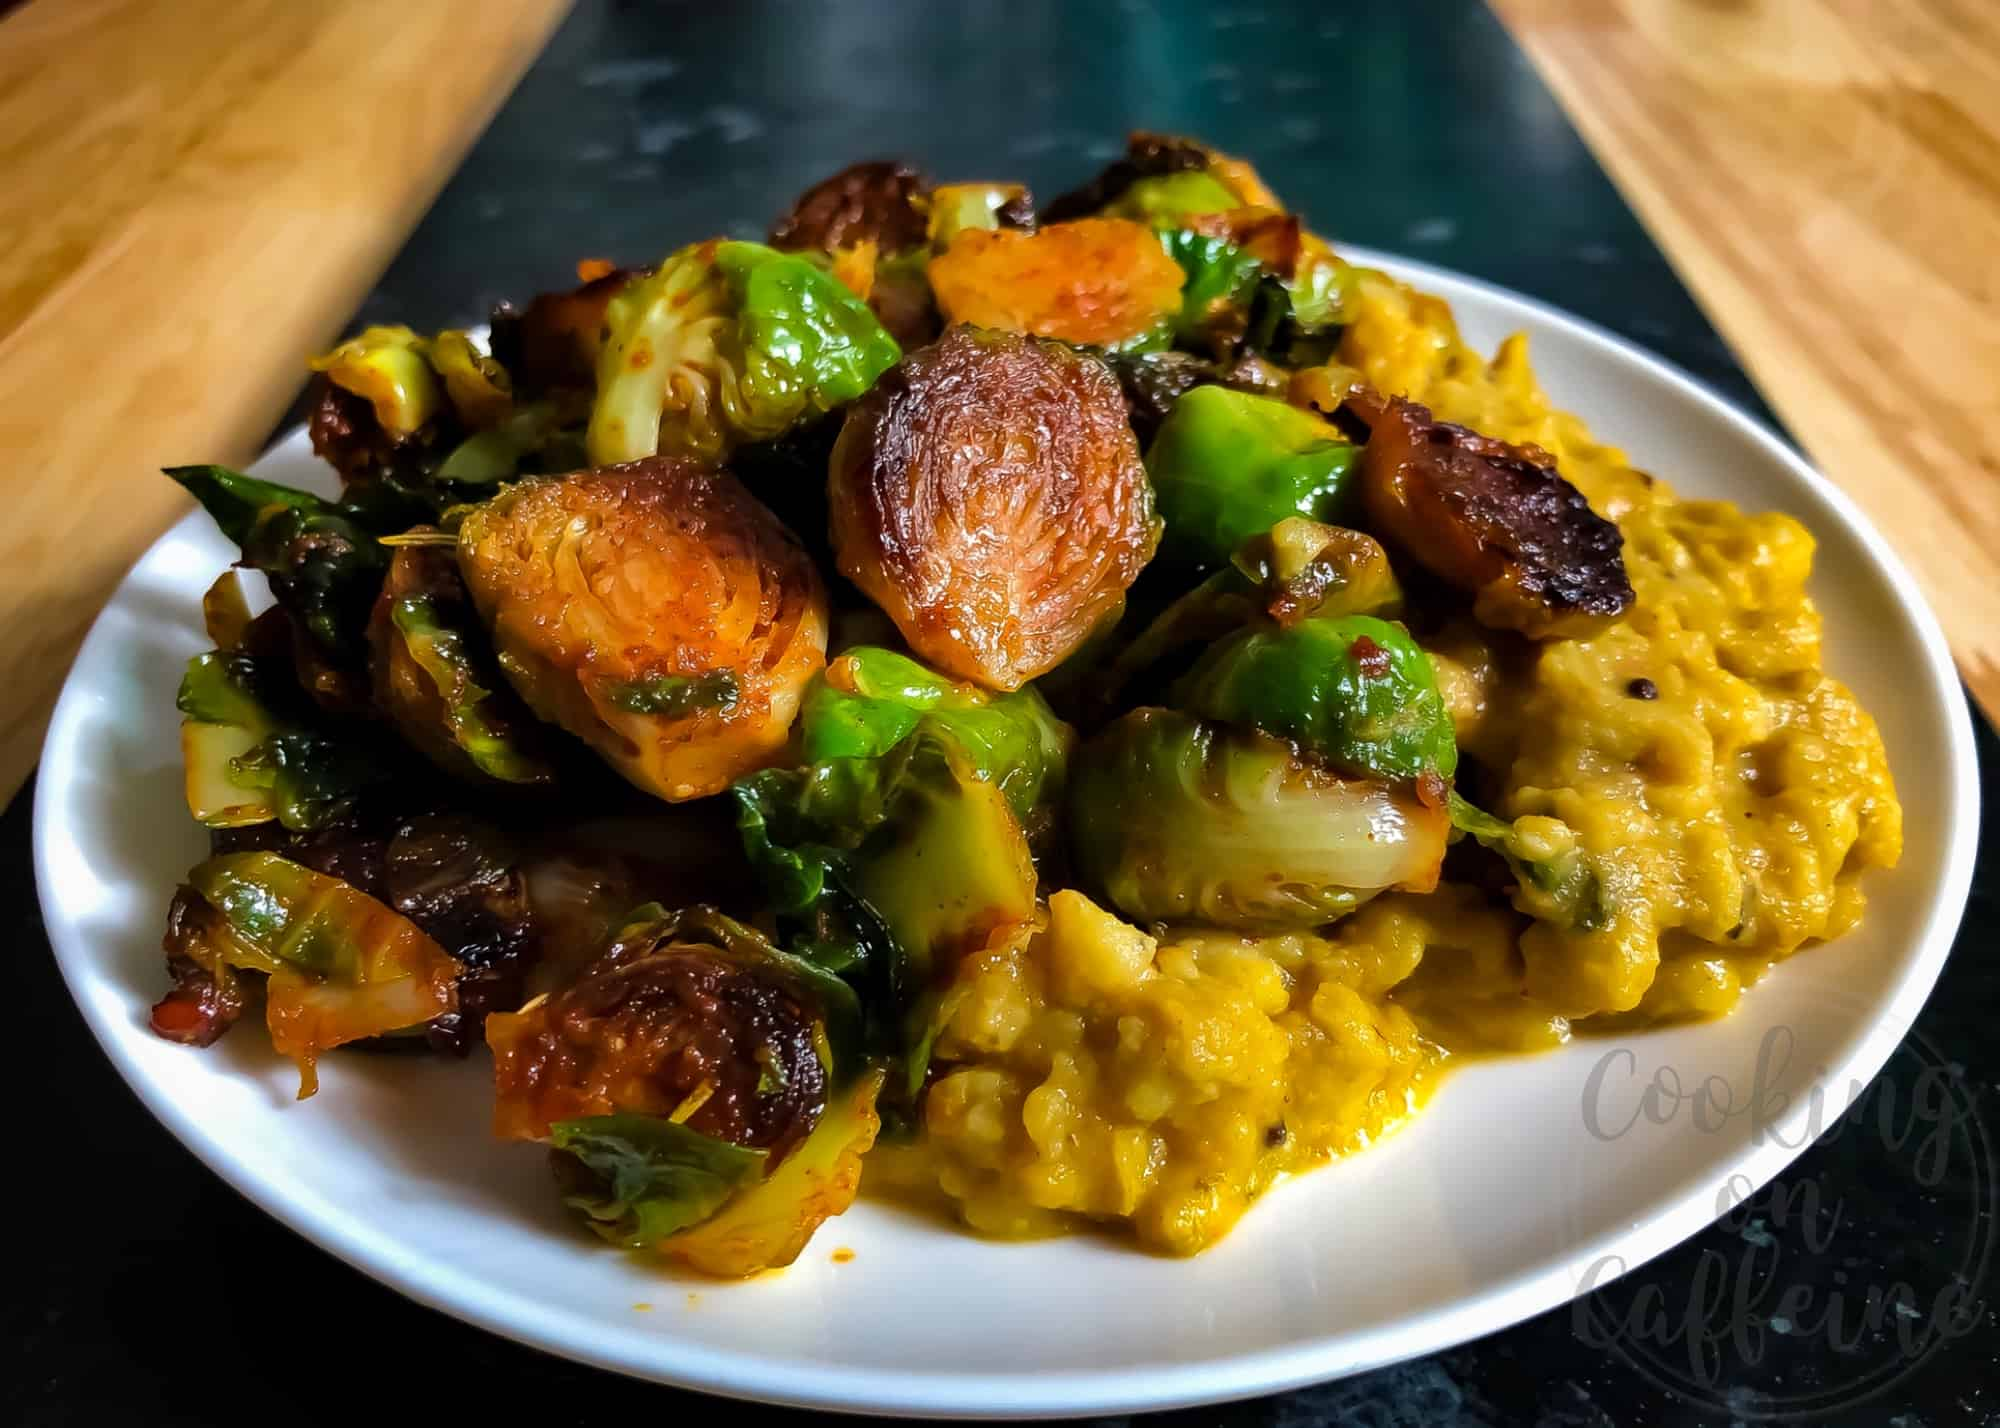 Side shot of seared Brussels sprouts coated in red chili paste and served on top of yellow dahl curry.